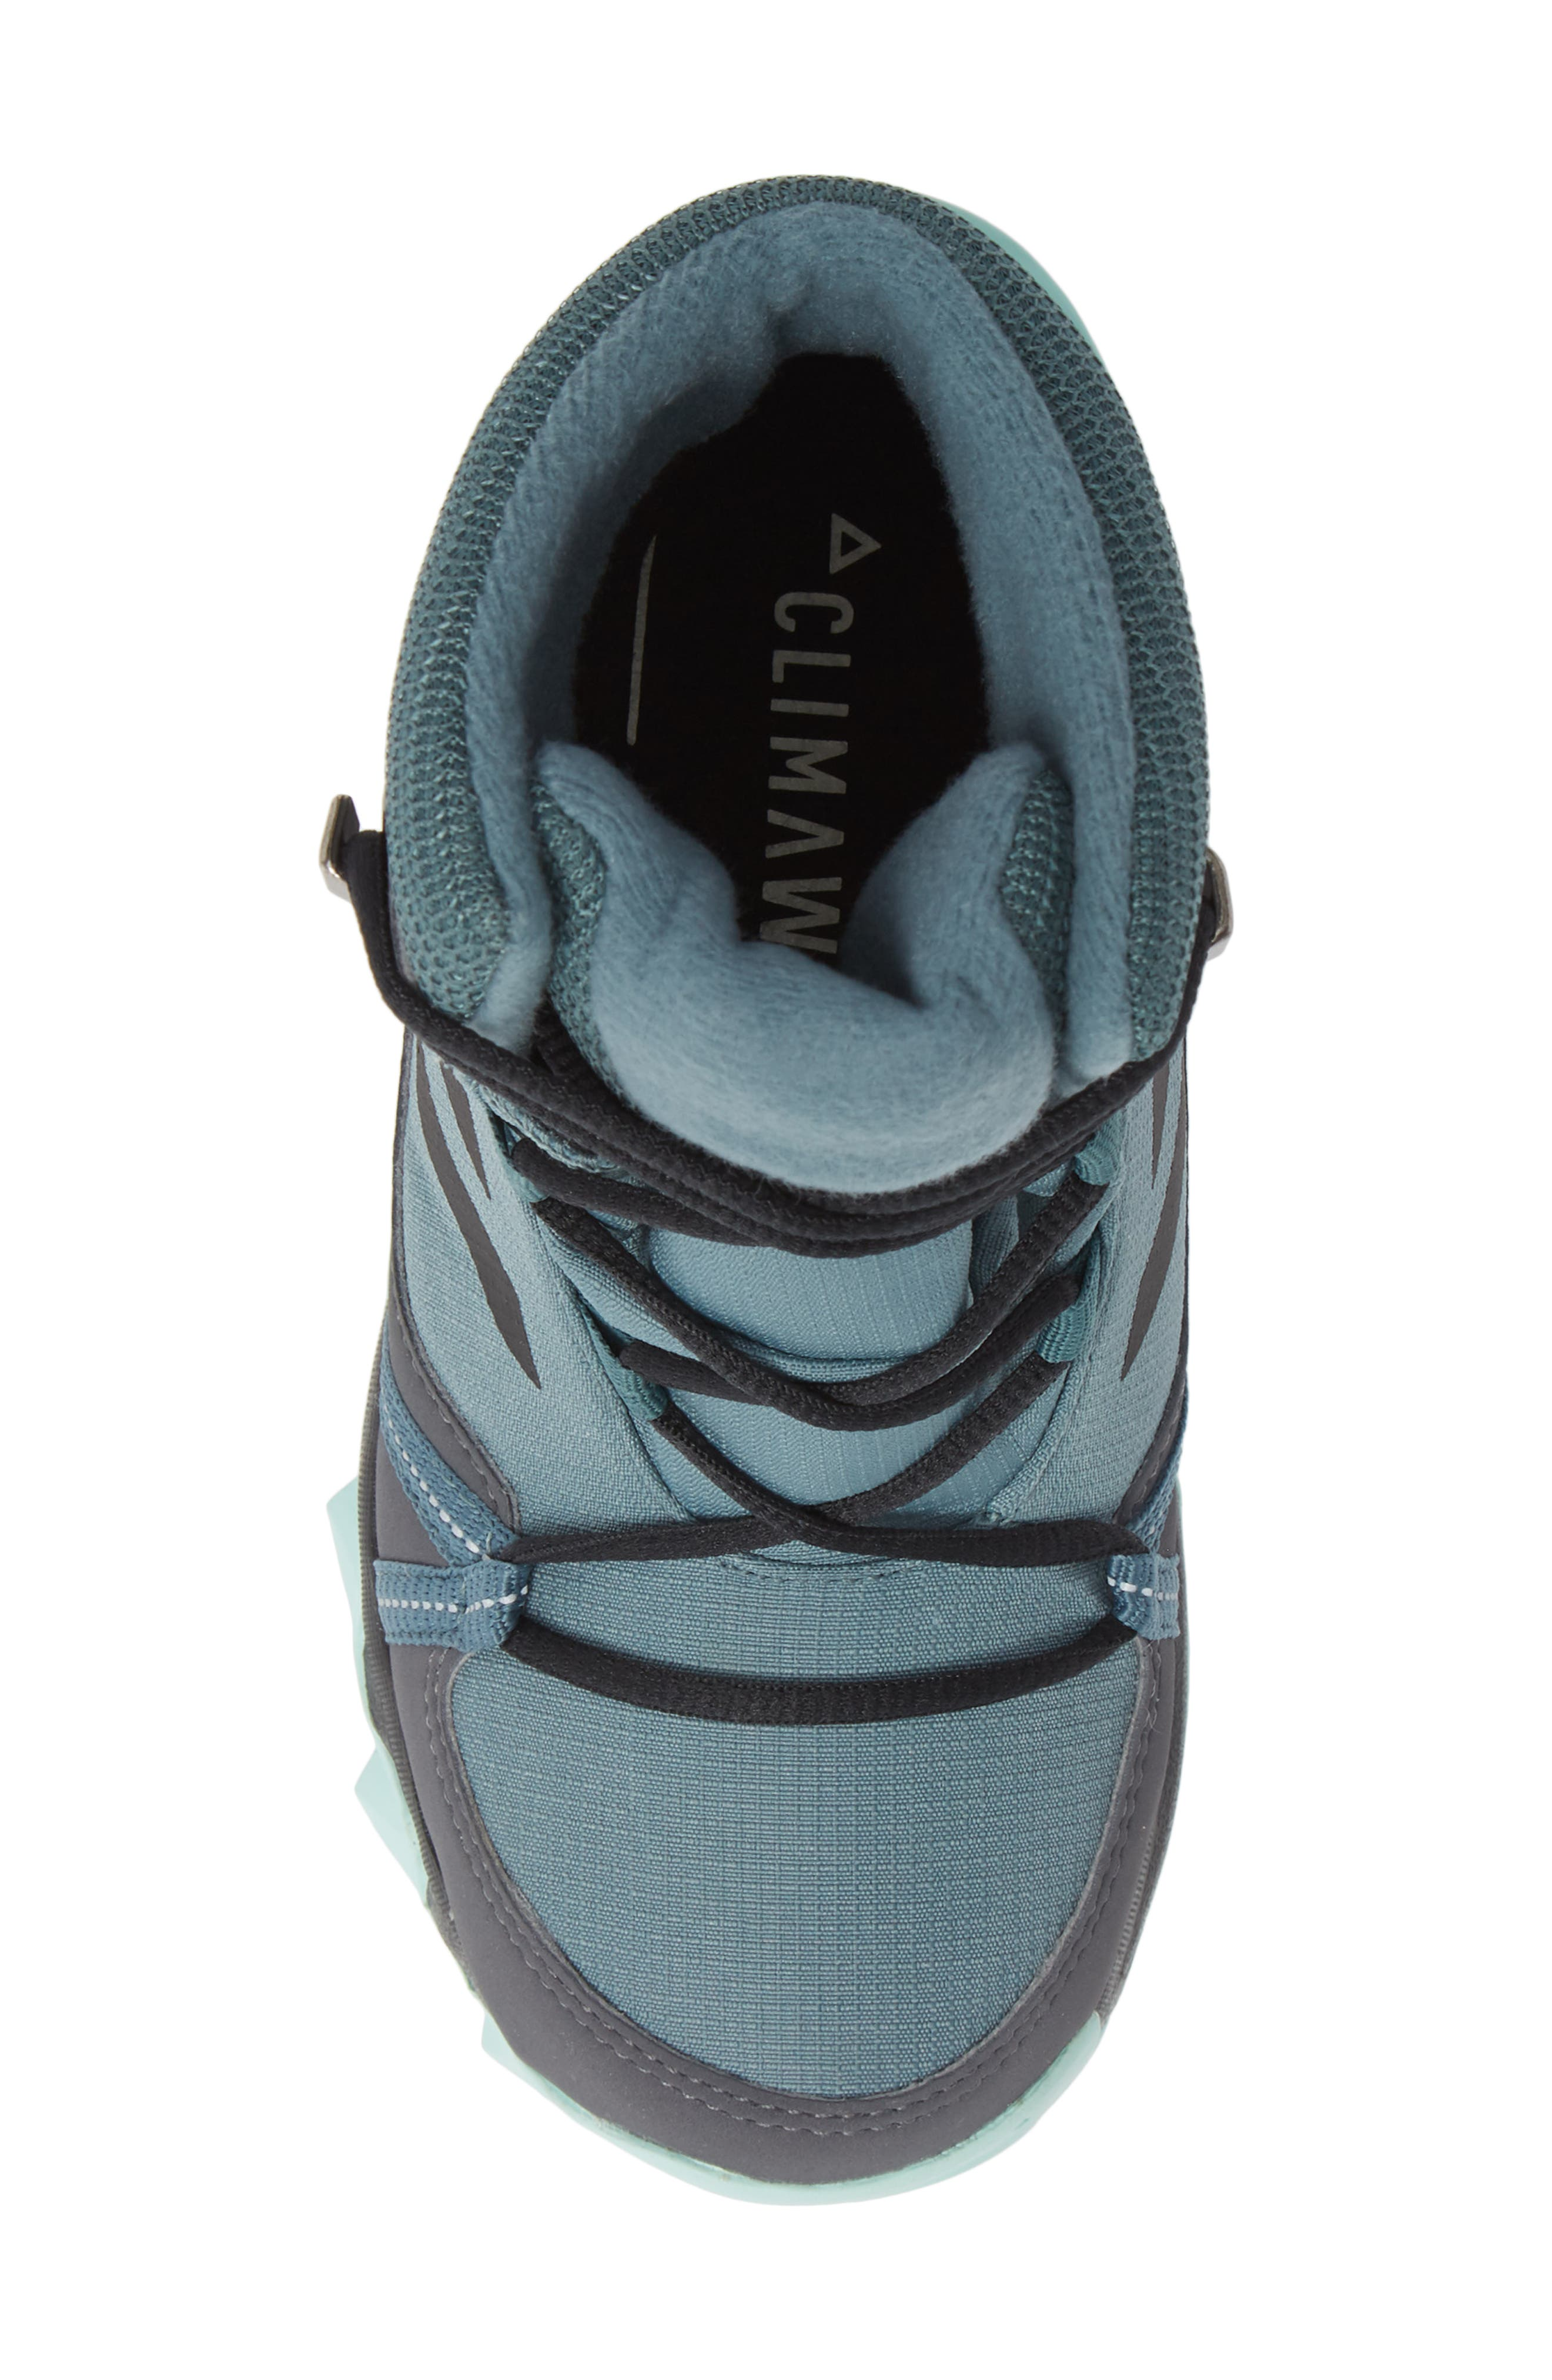 Terrex Snow CP CW Insulated Waterproof Sneaker Boot,                             Alternate thumbnail 5, color,                             CLEAR MINT/ CARBON/ AQUA